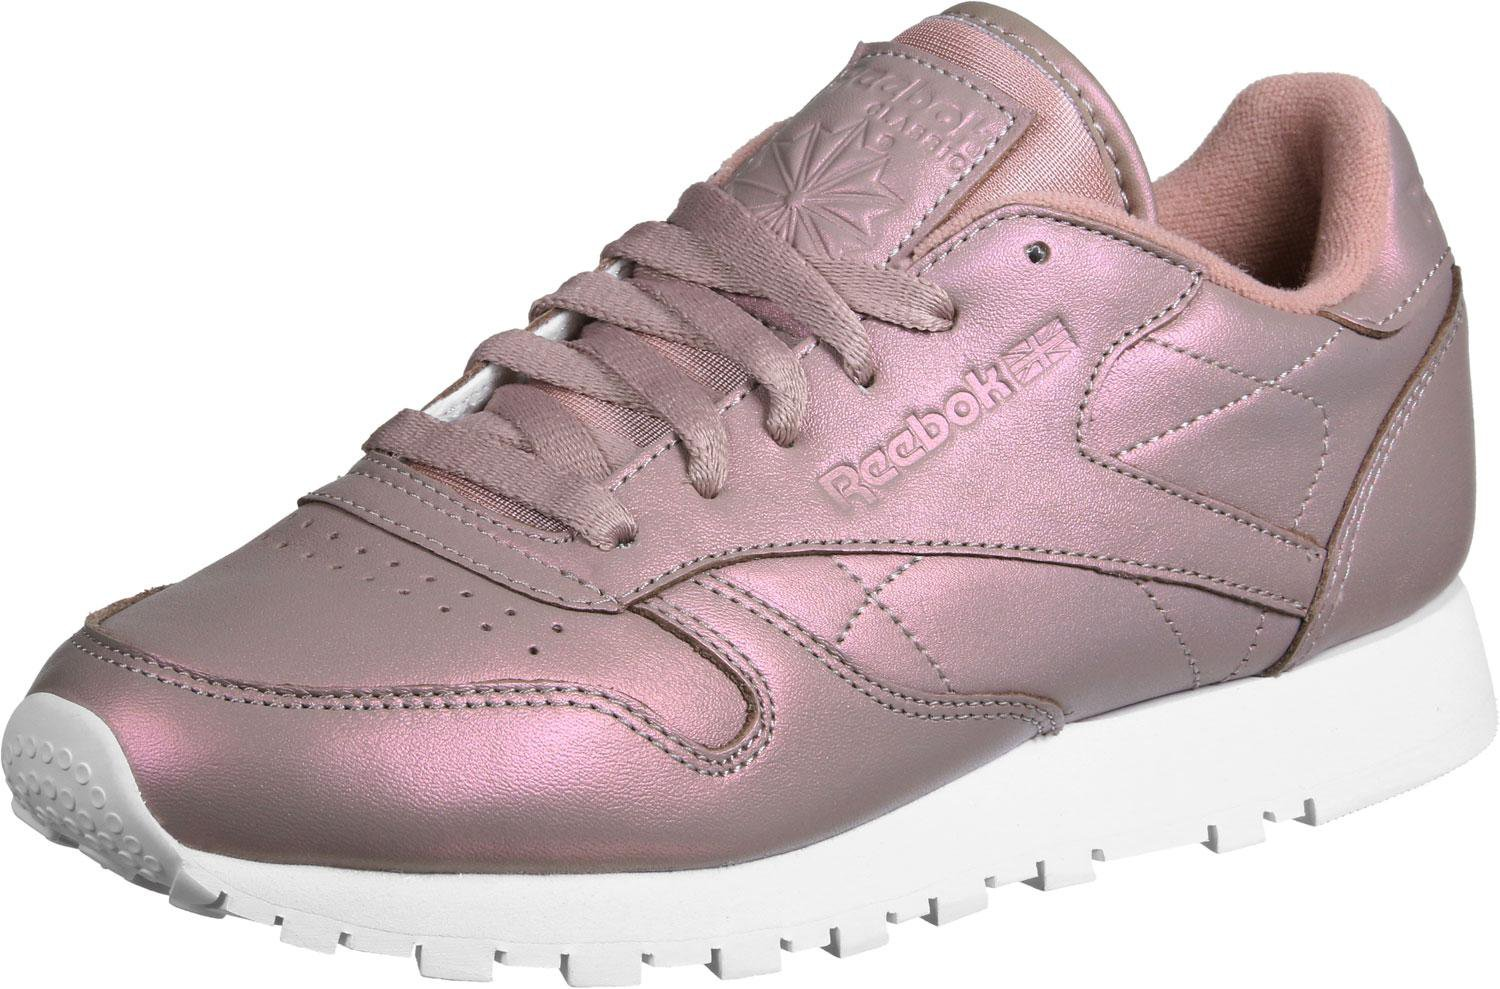 Reebok Classic Leather Pearlized rose goldwhite